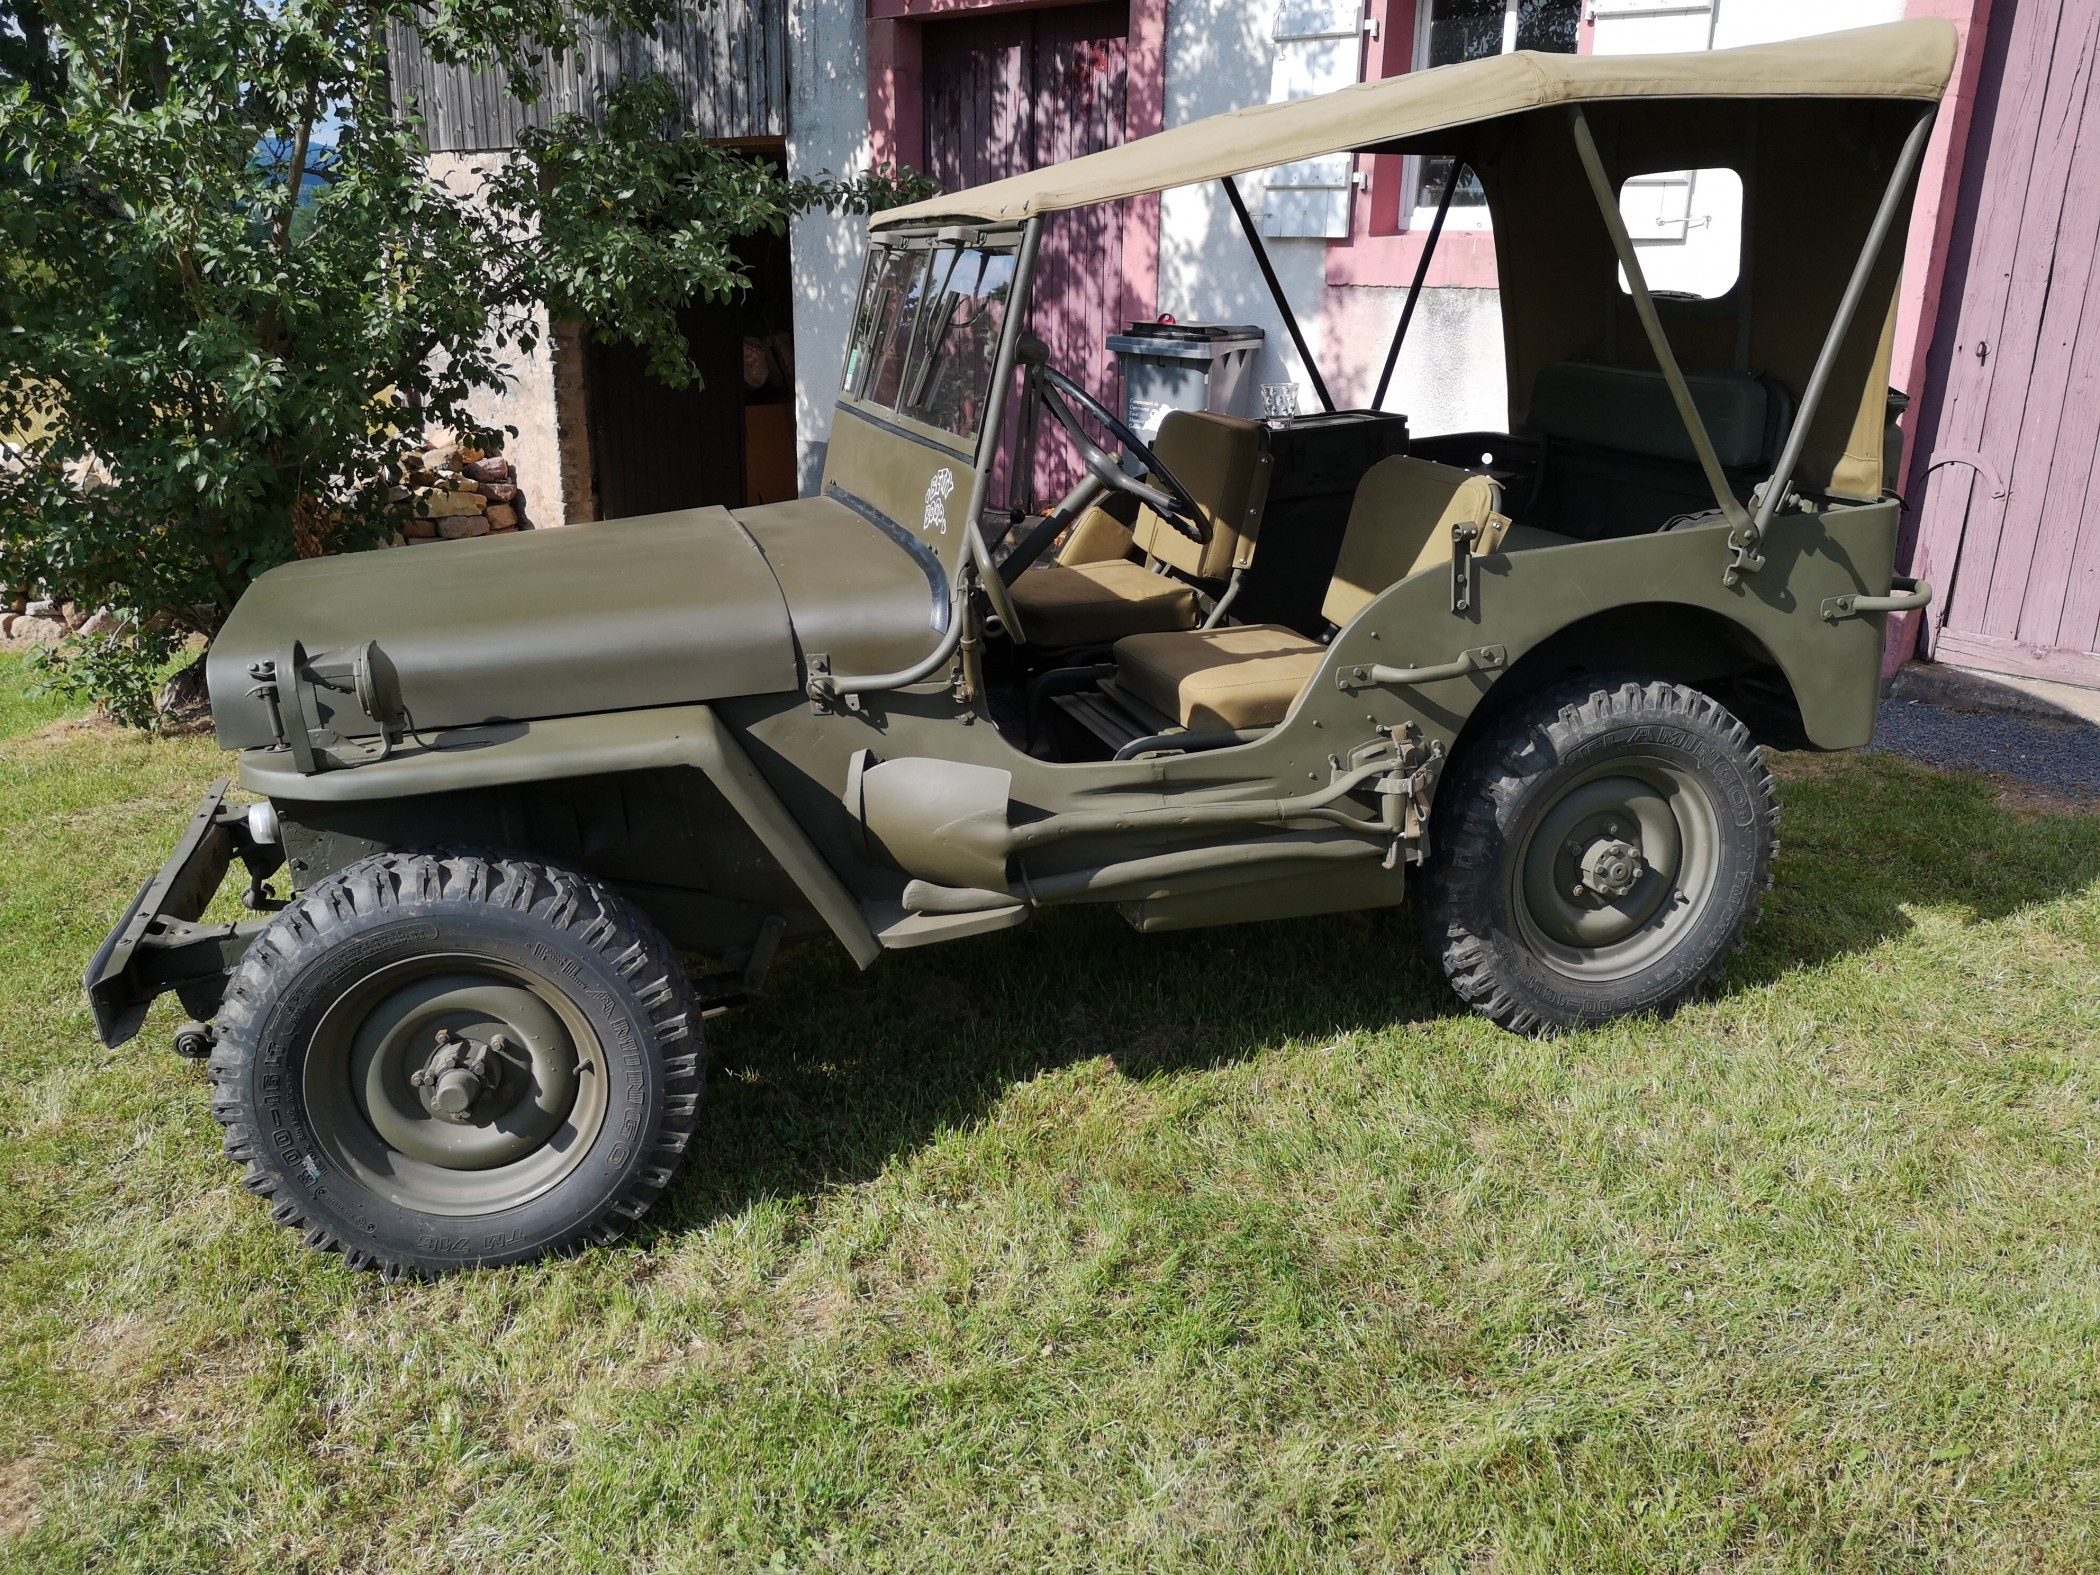 HOTCHKISS M201 Jeep - 1962